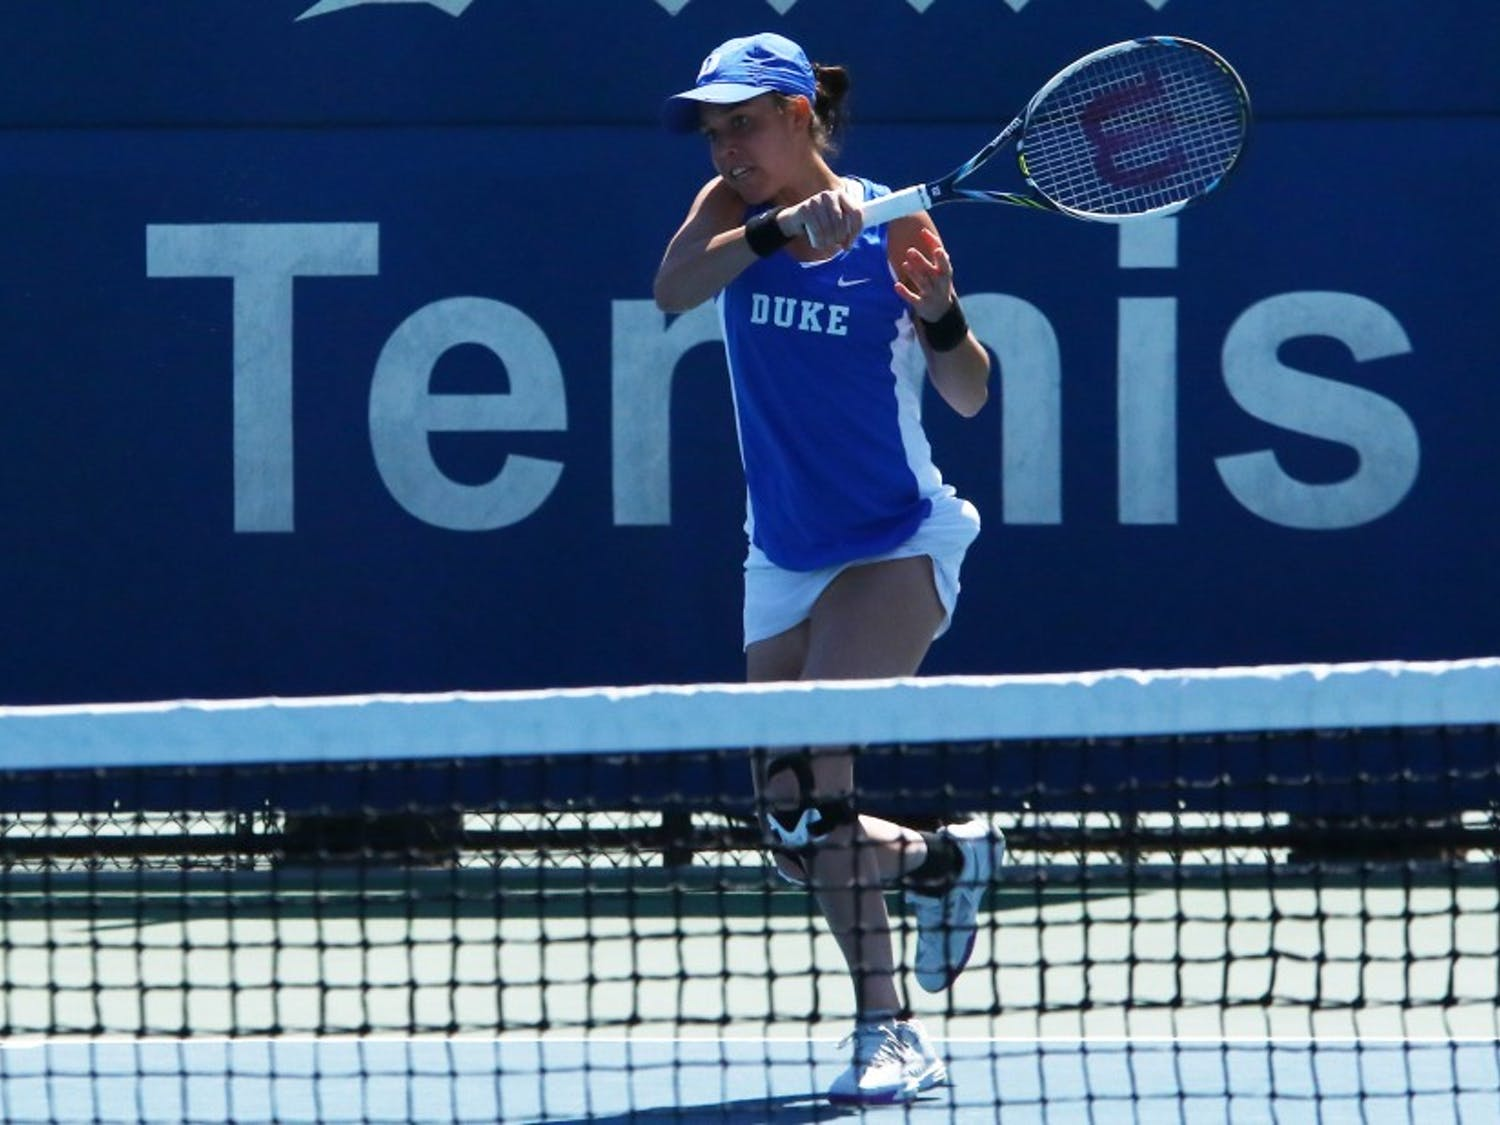 Beatrice Capra fought a tough three-setter but lost the decisive match to Ronit Yurovsky as Duke dropped a 4-3 decision to Michigan Wednesday afternoon.